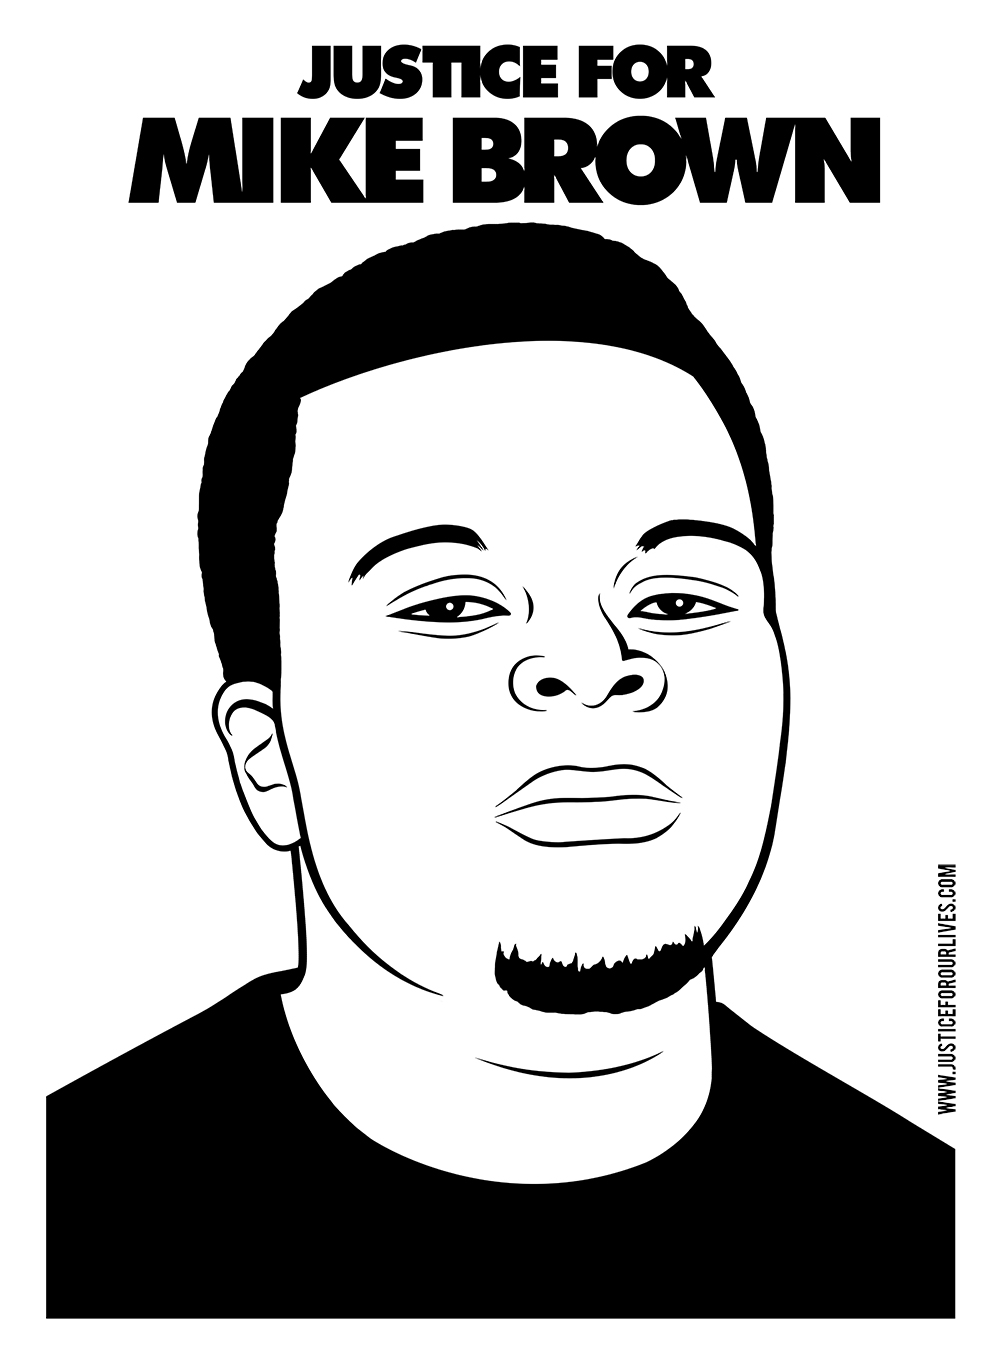 Justice for Mike Brown. Digital Design. 2015. Mike Brown was killed by officer Darren Wilson after a physical confrontation in Ferguson, MI. Brown had his hands up when he was fatally shot.